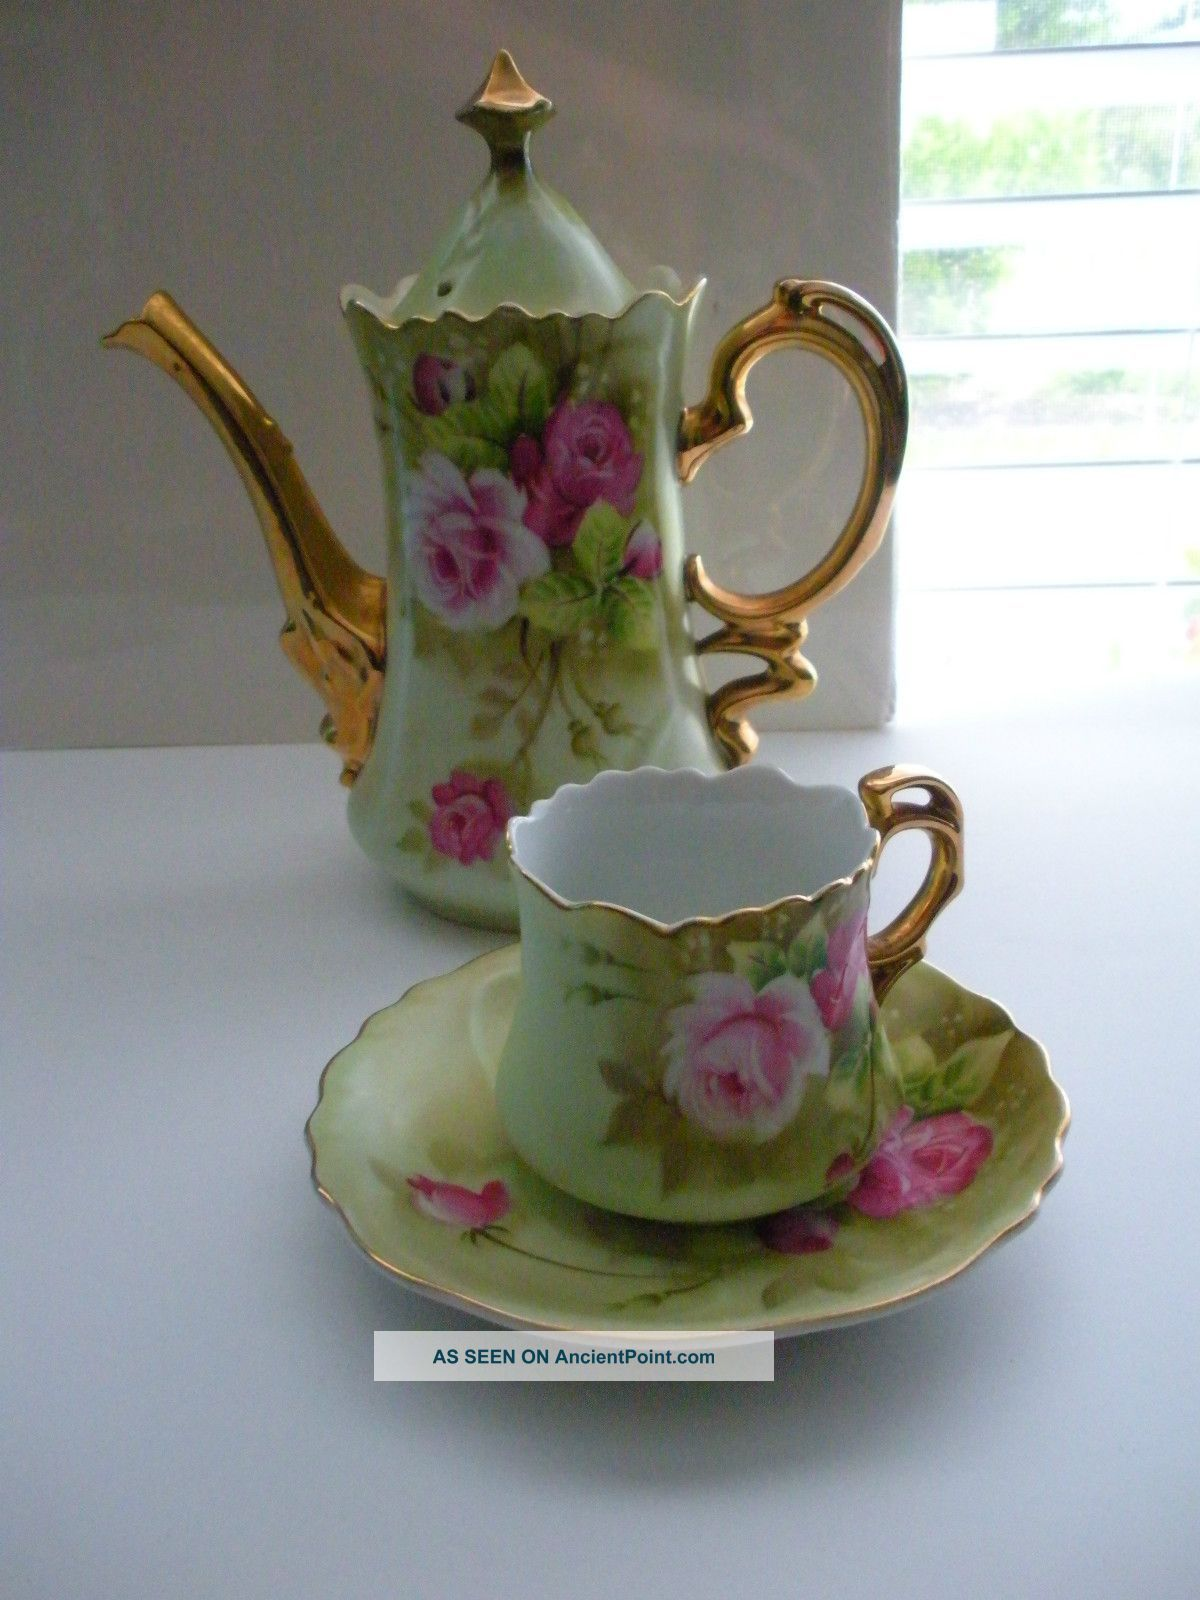 Lefton China Vintage Tea Pot Cup Saucer Hand Painted Green